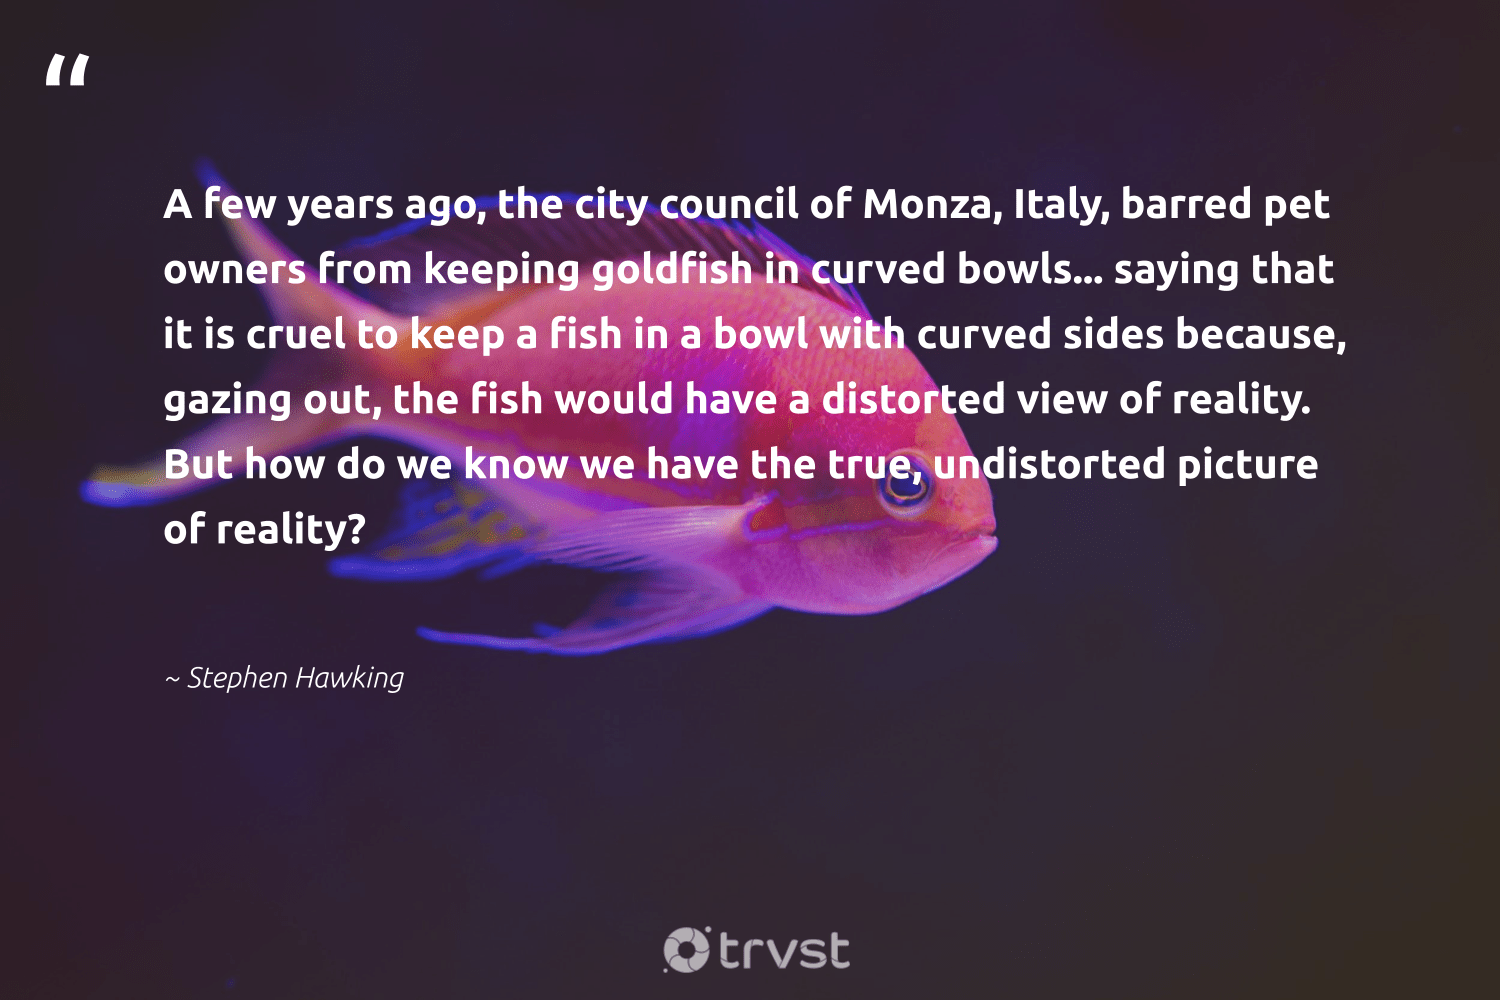 """""""A few years ago, the city council of Monza, Italy, barred pet owners from keeping goldfish in curved bowls... saying that it is cruel to keep a fish in a bowl with curved sides because, gazing out, the fish would have a distorted view of reality. But how do we know we have the true, undistorted picture of reality?""""  - Stephen Hawking #trvst #quotes #fish #intheocean #dogood #conservation #changetheworld #oceanlove #bethechange #wildlifeprotection #collectiveaction #perfectnature"""